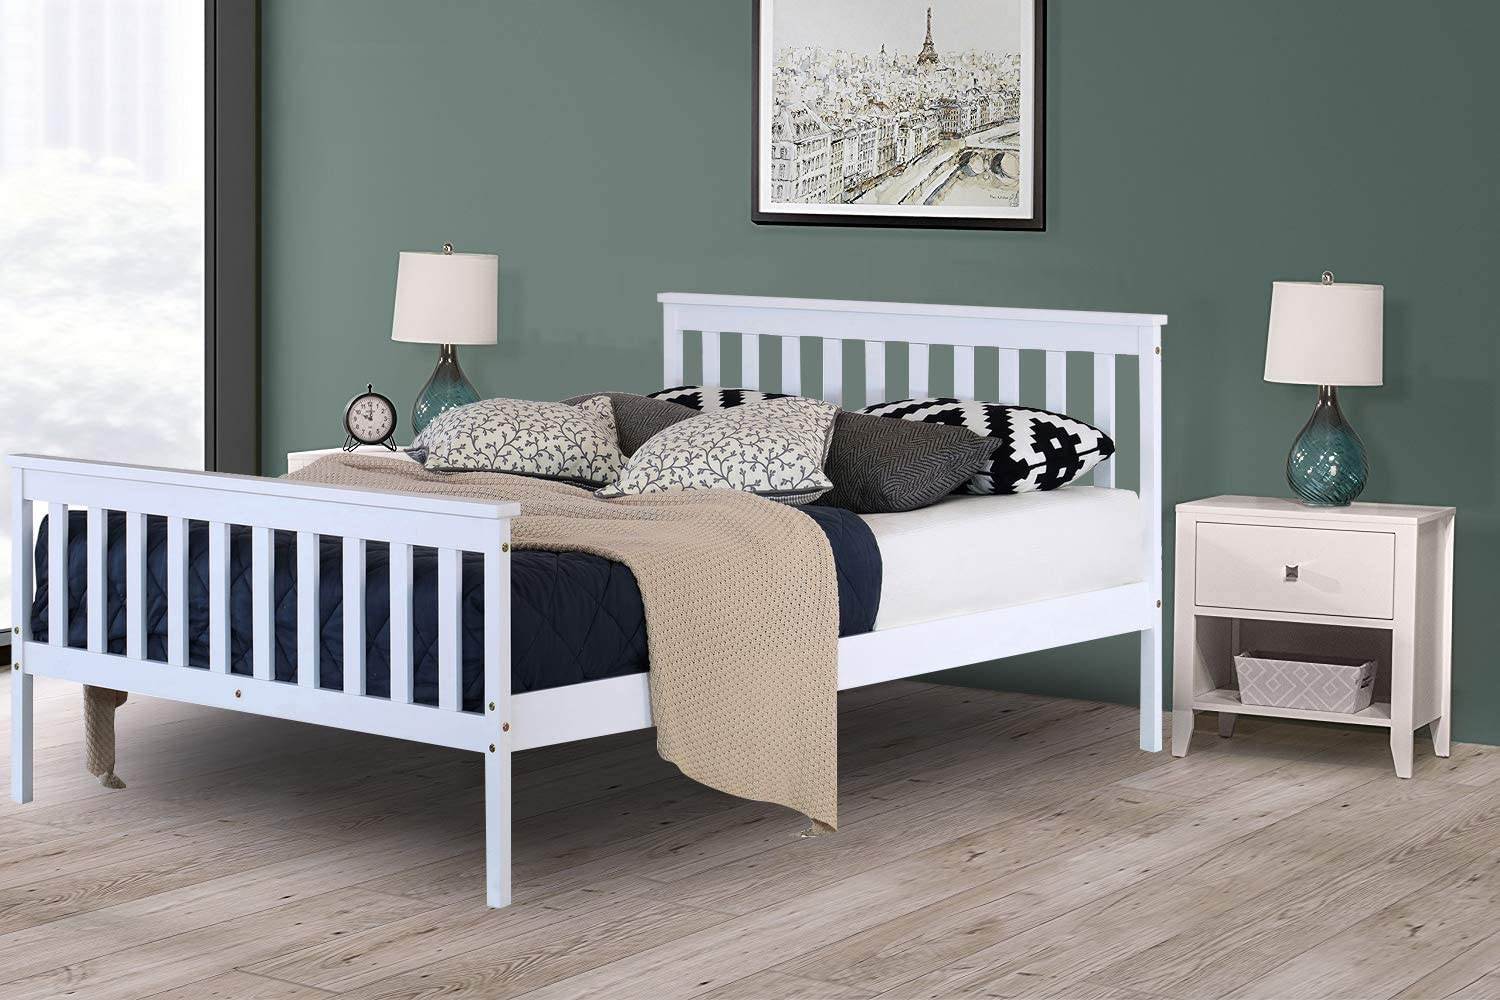 Xeohome Small Double Bed Wooden Frame 4ft White Finished Solid Pine Solid Headboard High Foot End Bedroom Furniture Perfect For Adults Kids Teenagers King Amazon Co Uk Kitchen Home